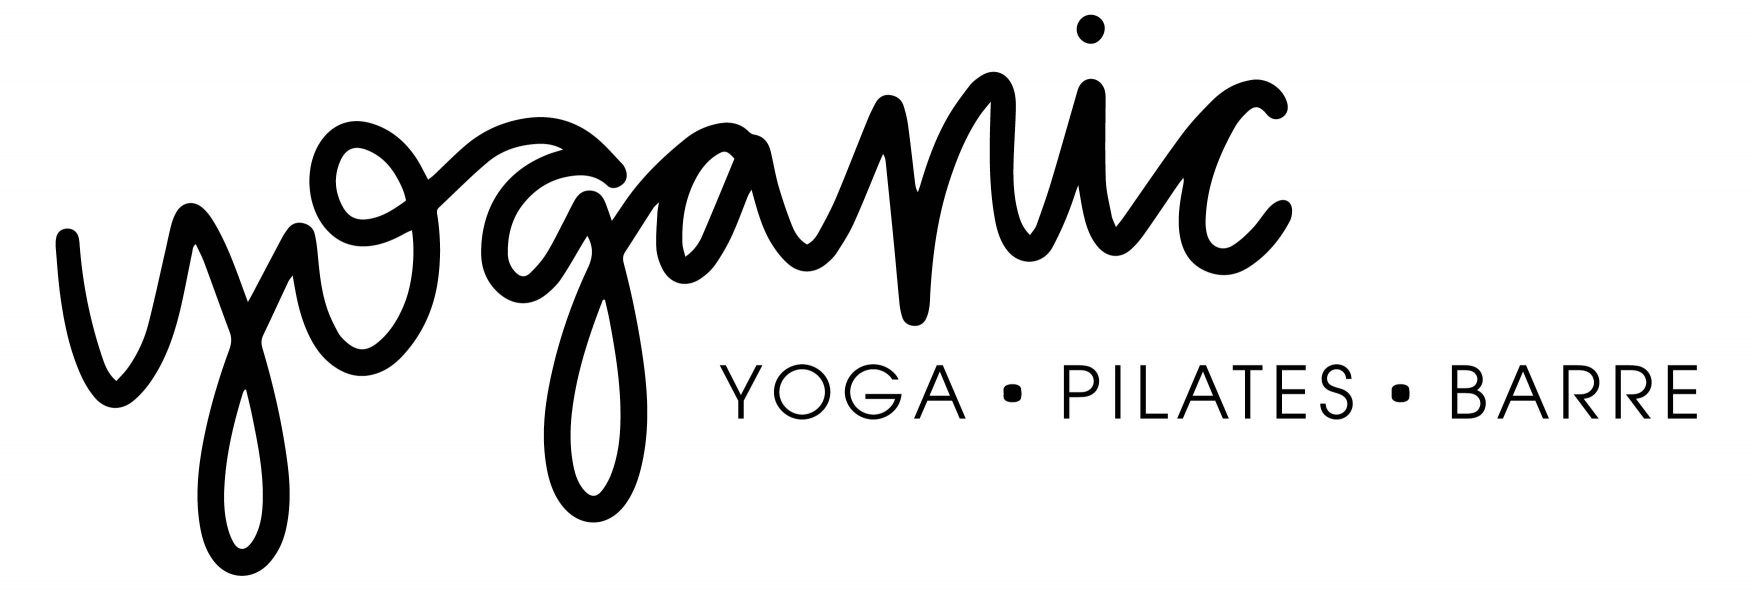 Yoganic: Yoga. Pilates. Barre